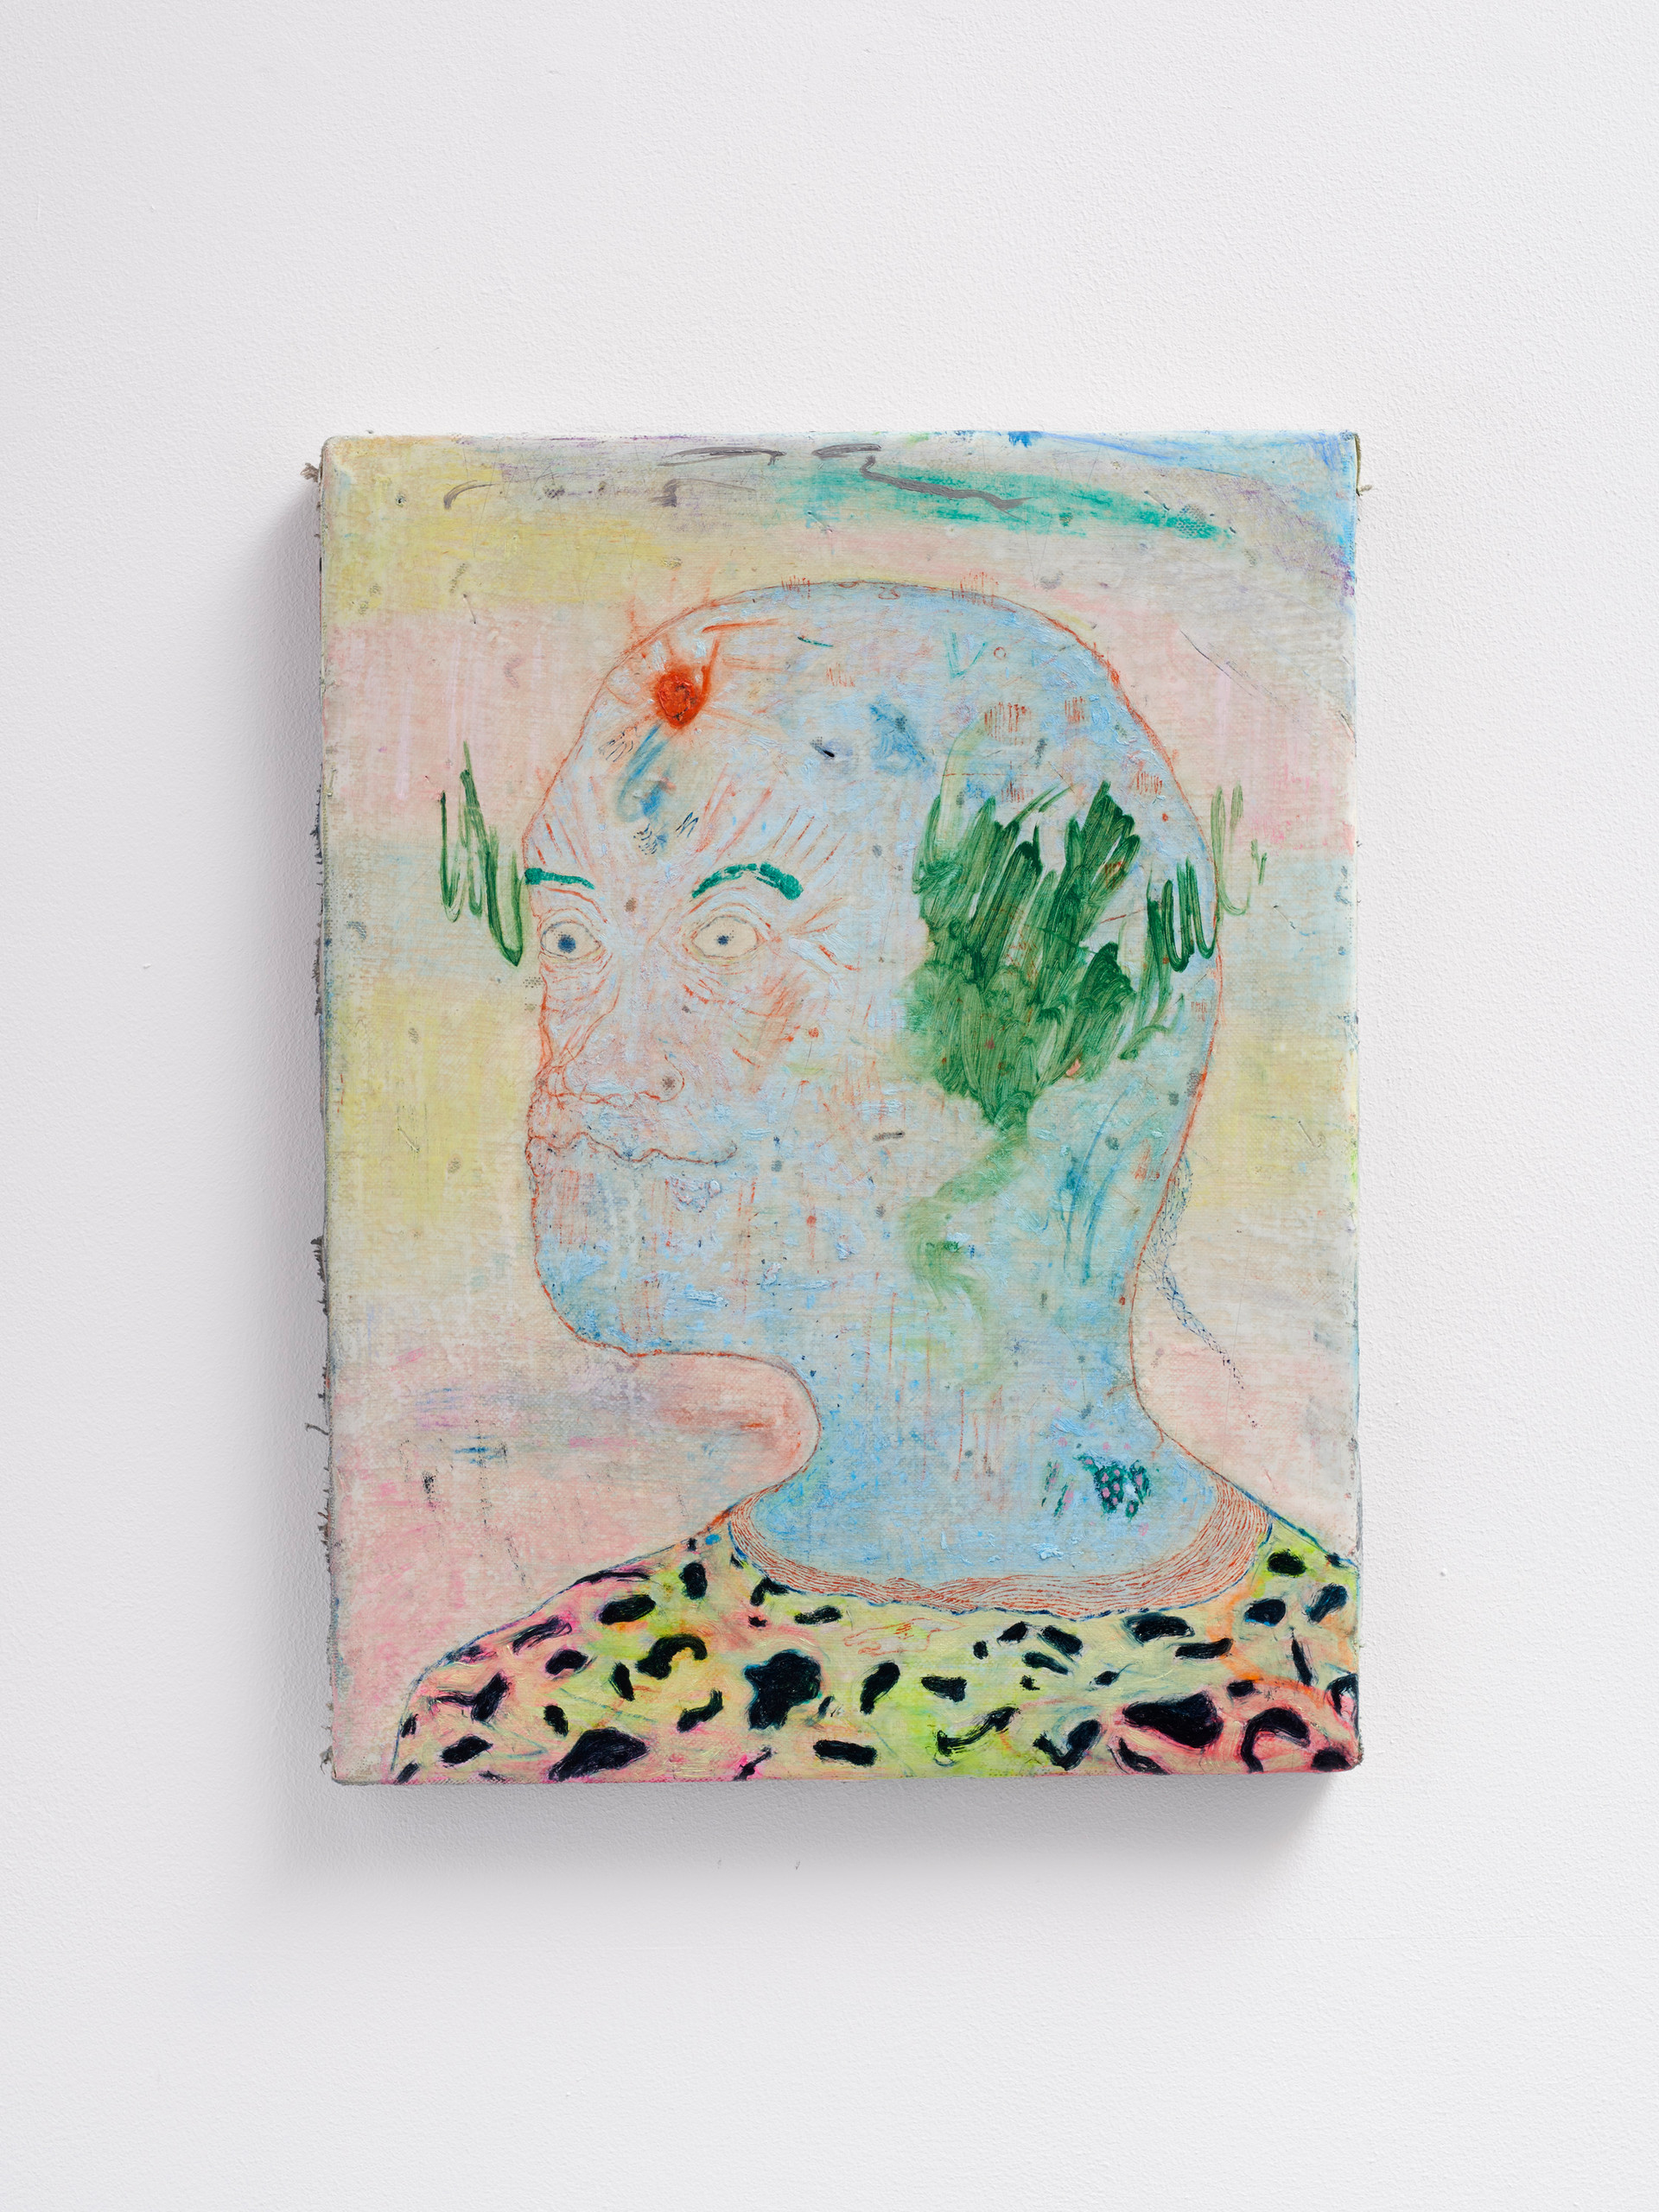 ~ R T a spicy migraine grease. 2015-18 - oil paint, pastel and pastel on linen. 45.5 x 35.5 cm